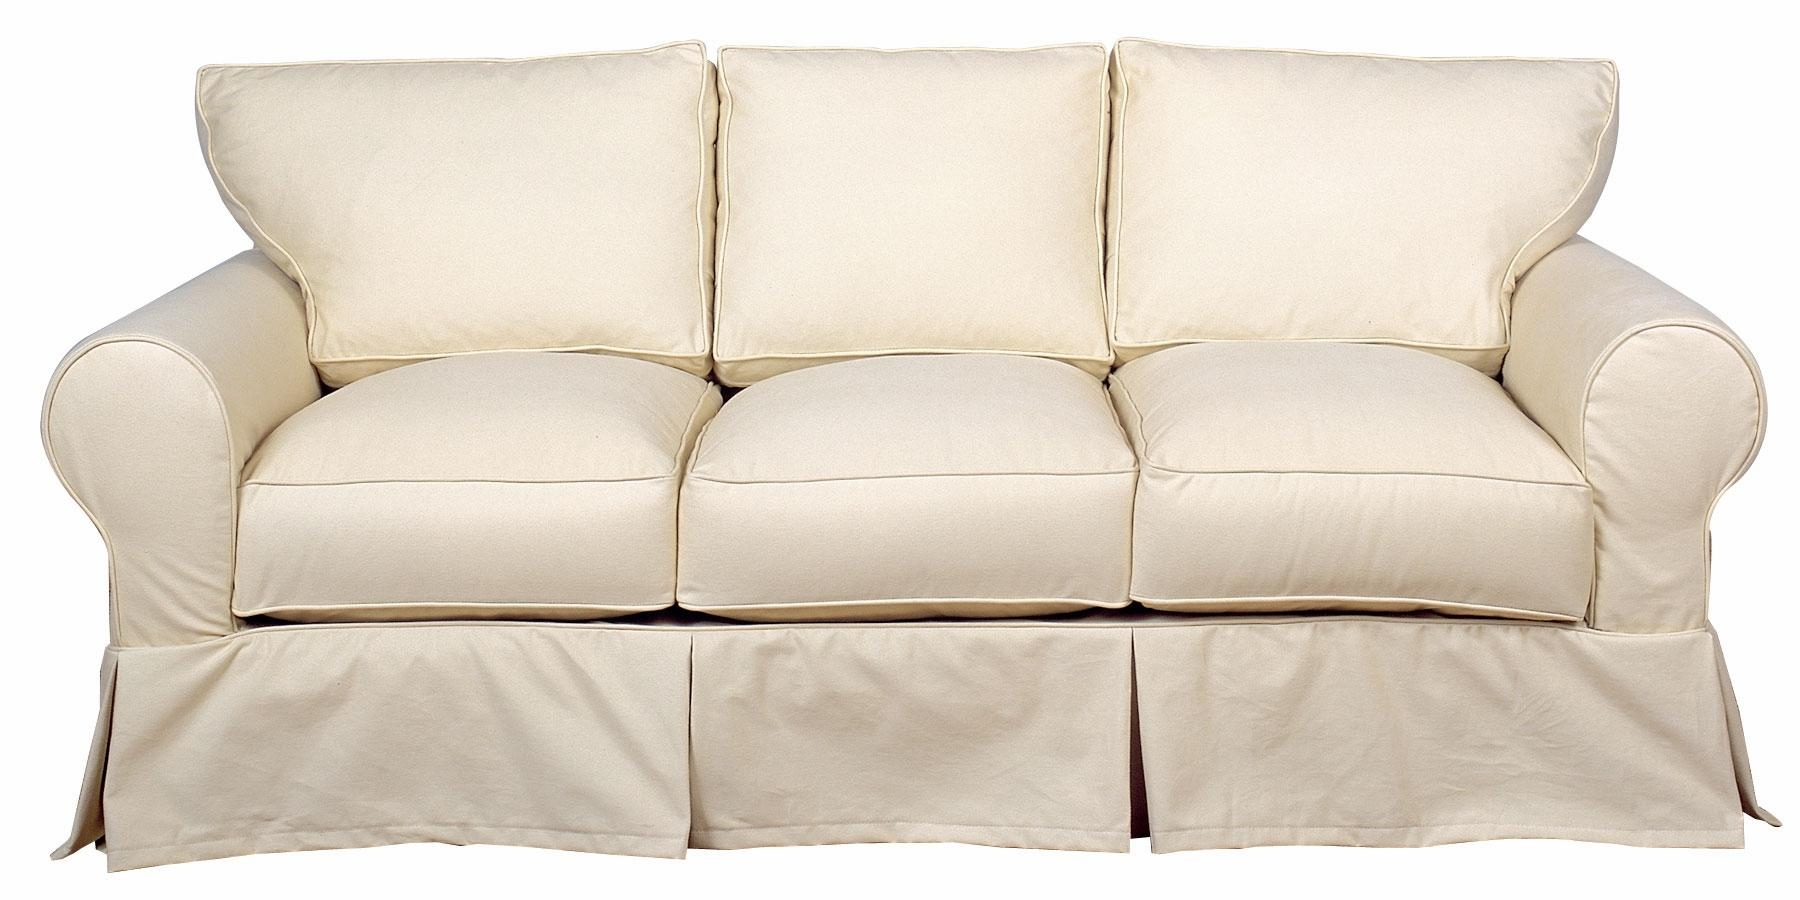 20 ideas of loveseat slipcovers 3 pieces sofa ideas Loveseat cushion covers